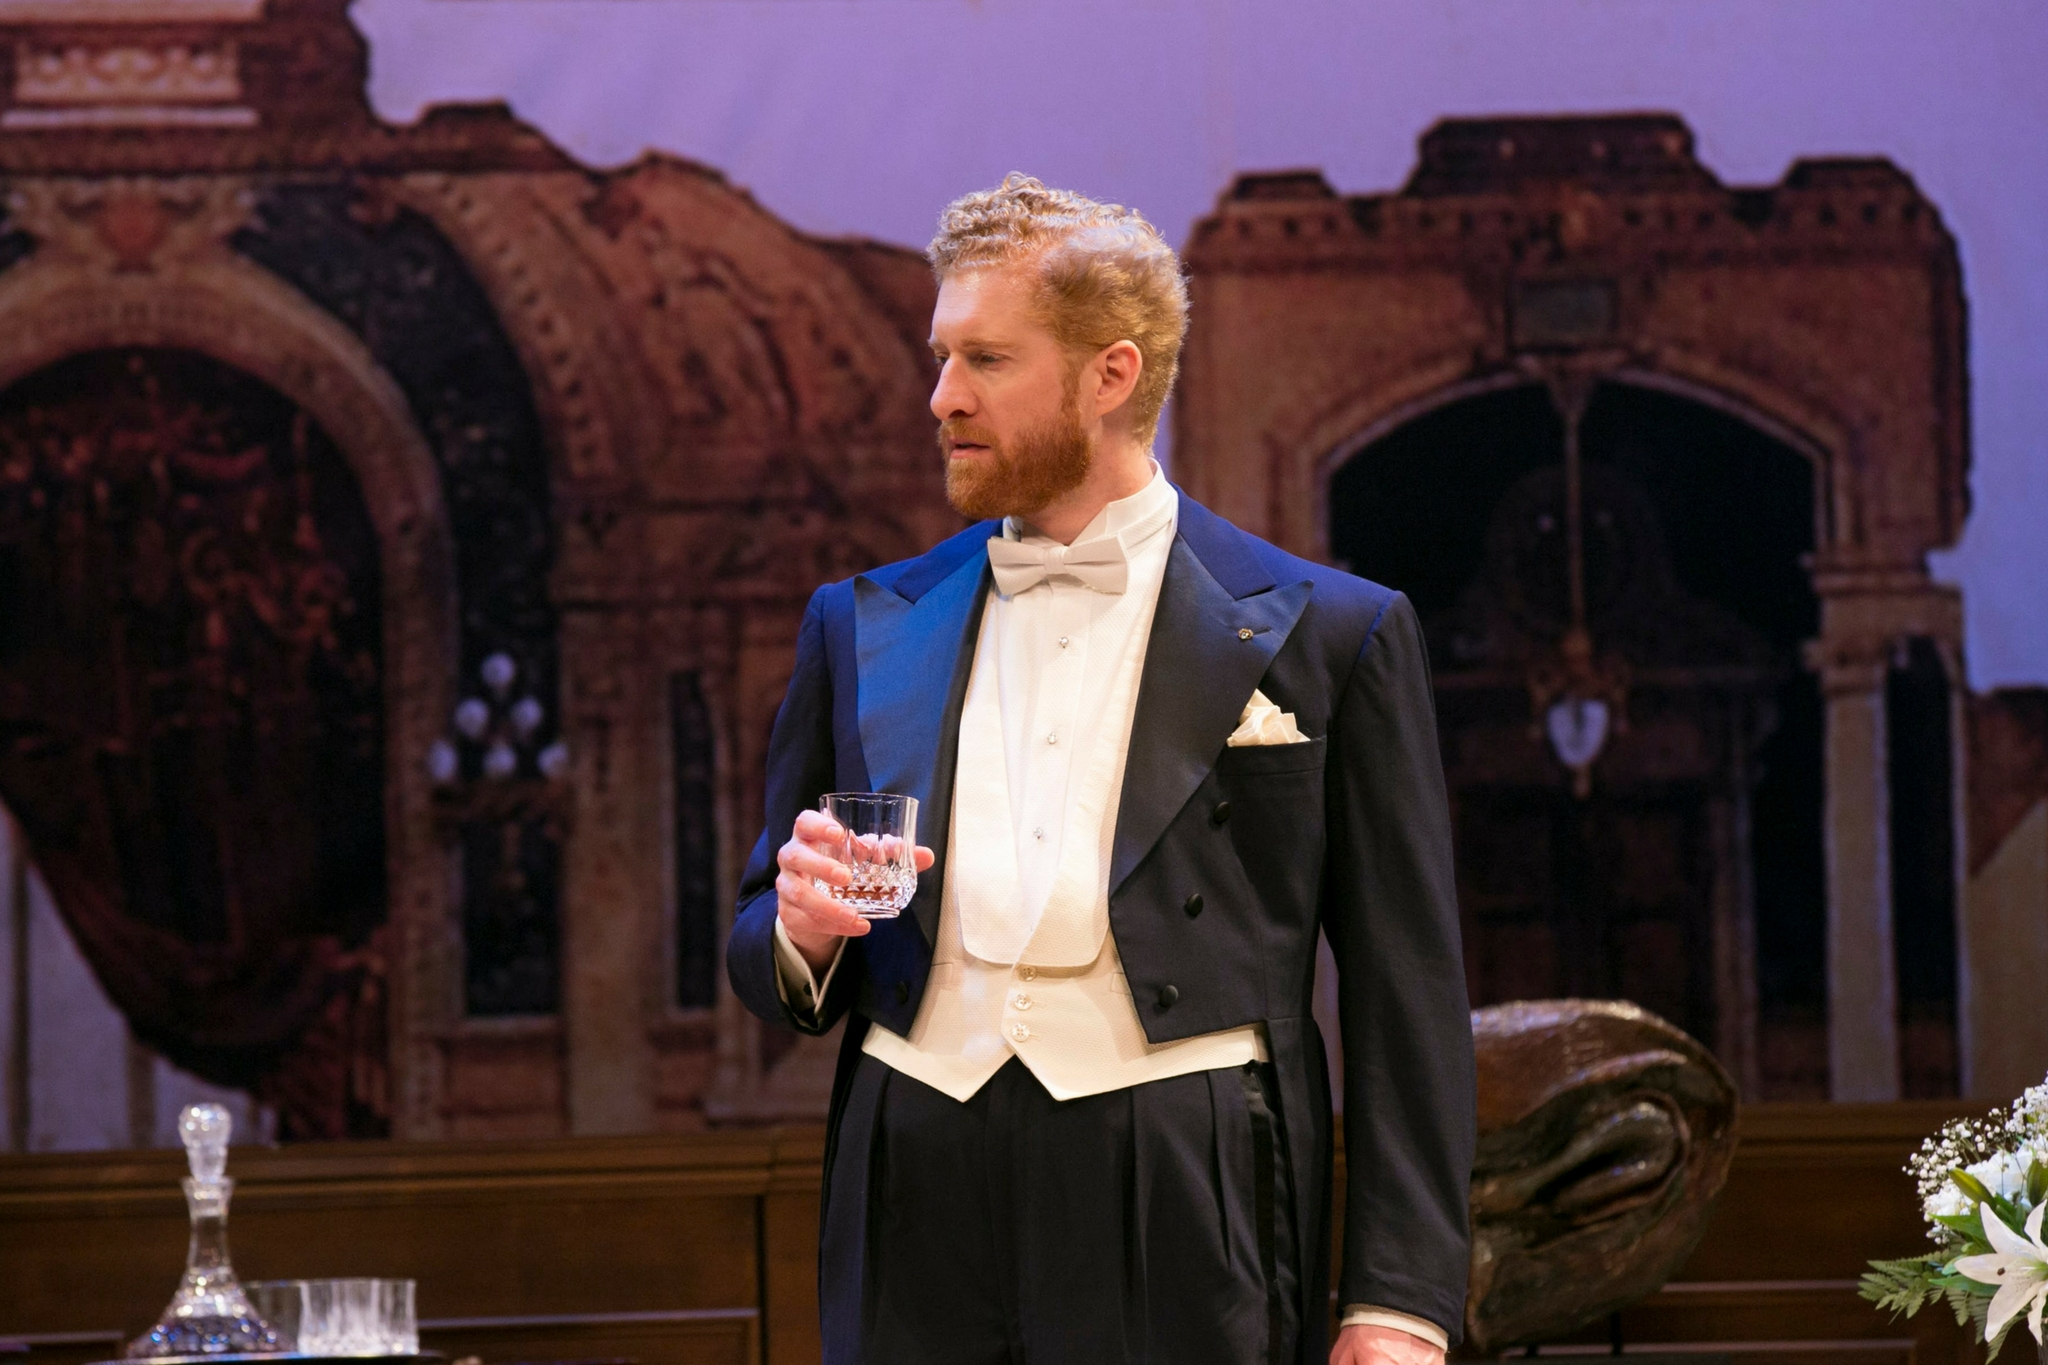 Ed Hoopman (Tobias Vivian Pfeiffer) in Old Money, 2018-Photo by Evgenia Eliseeva